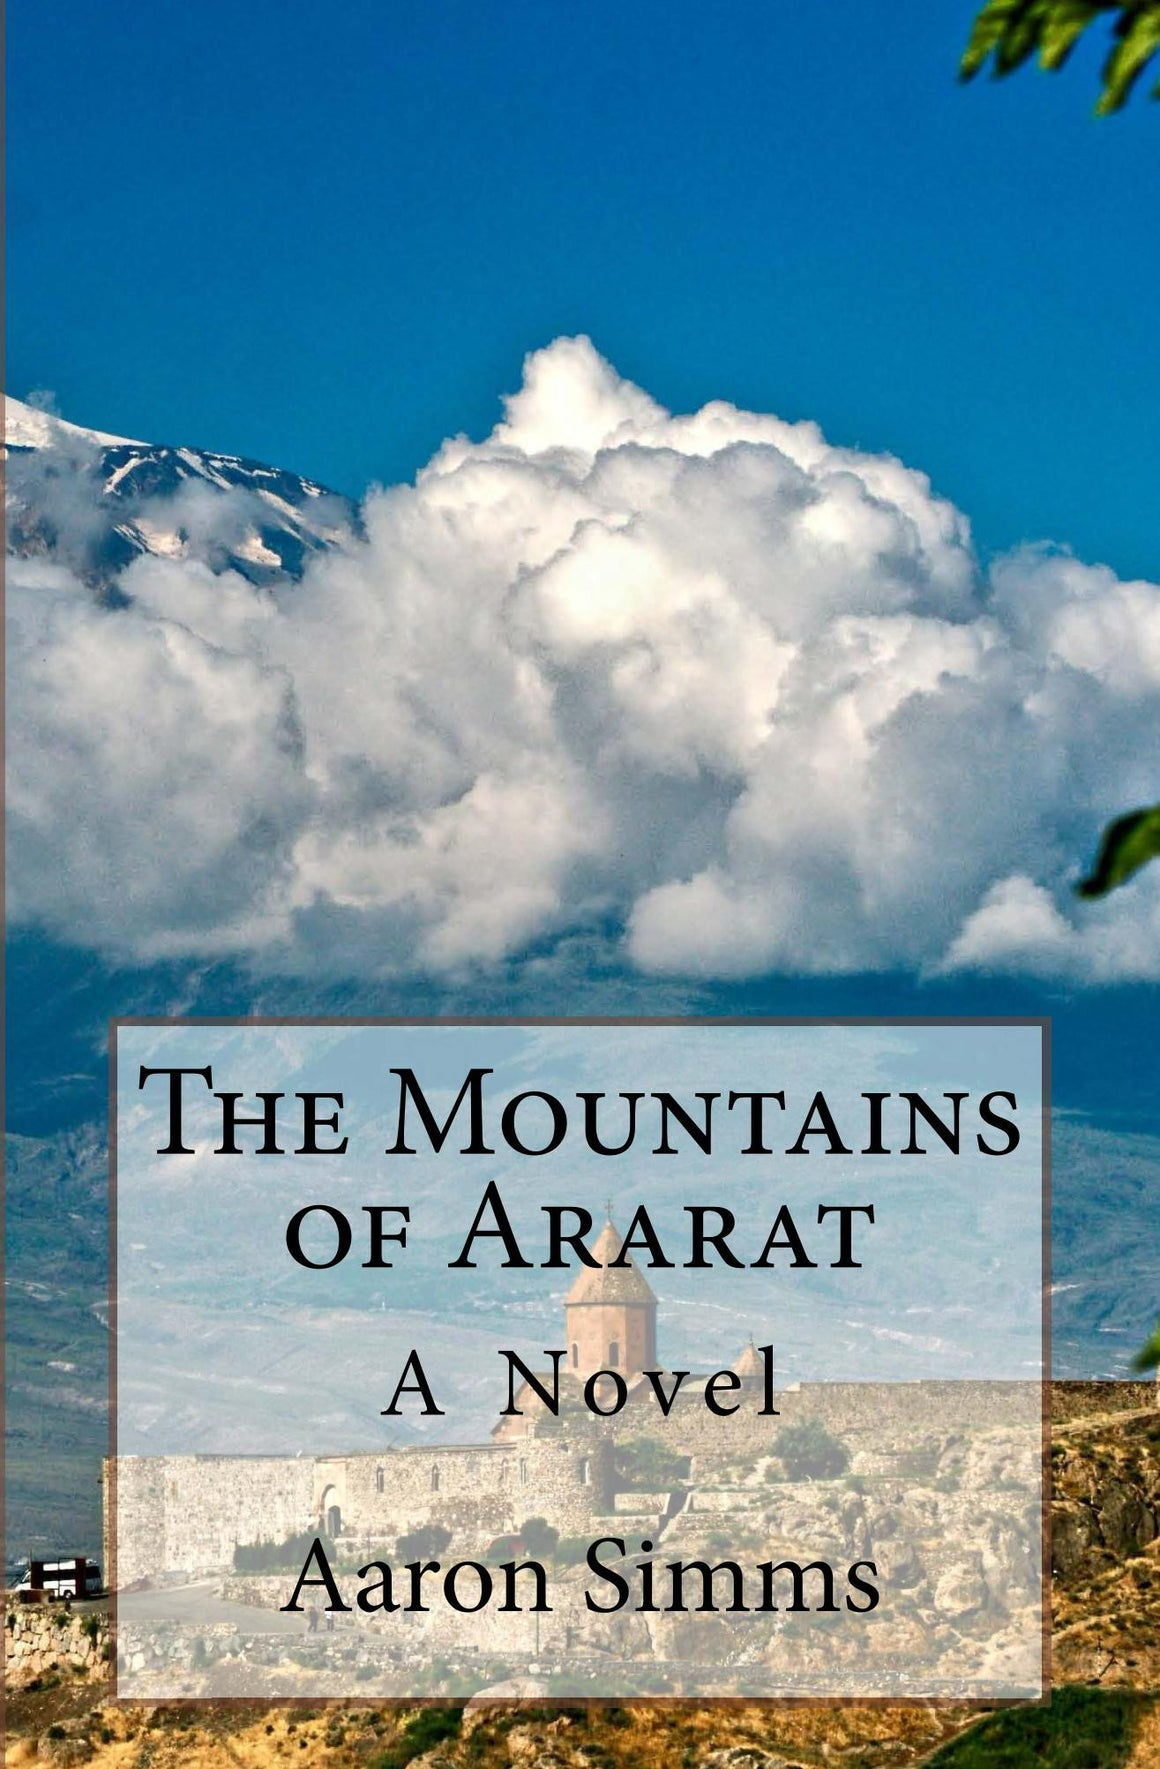 The Mountains of Ararat: A Novel